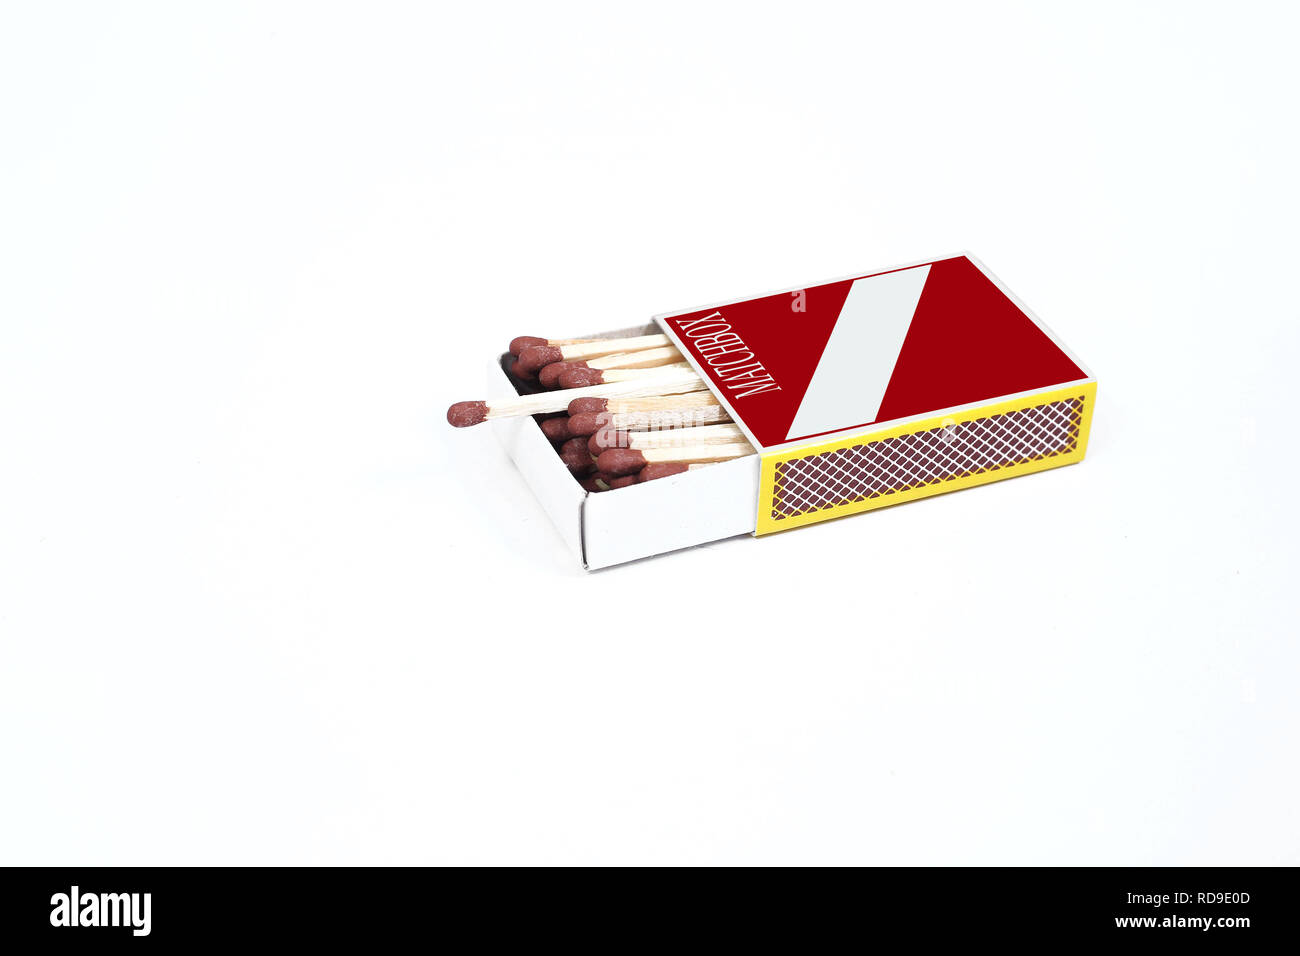 Picture of matches in the match box. Isolated on the white background. - Stock Image